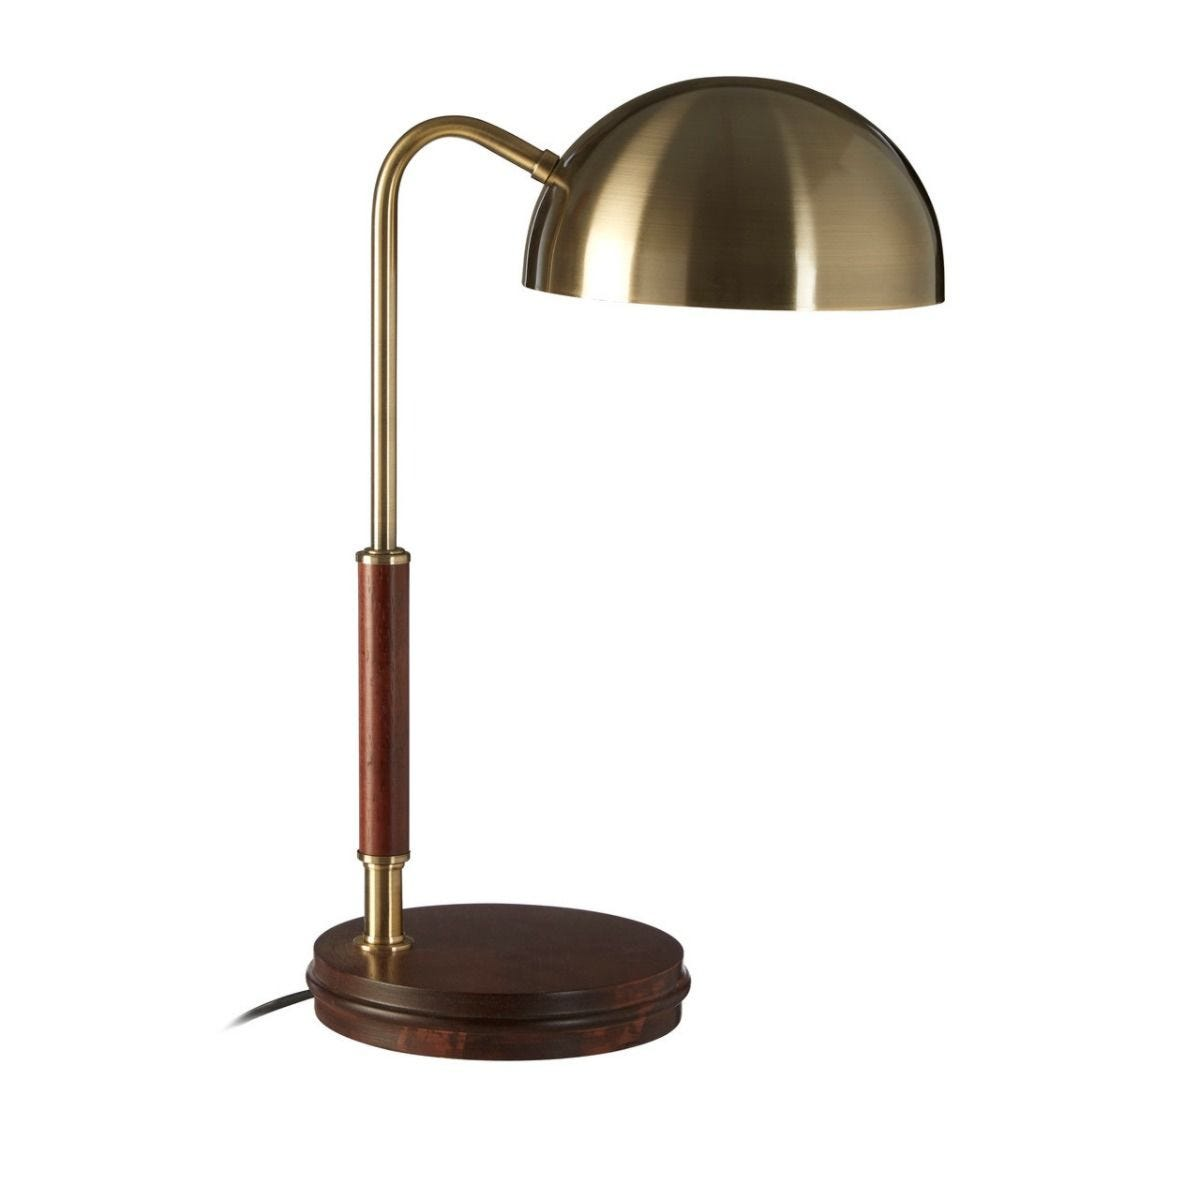 Table Lamp Antique Brass Finish With Real Wood Base